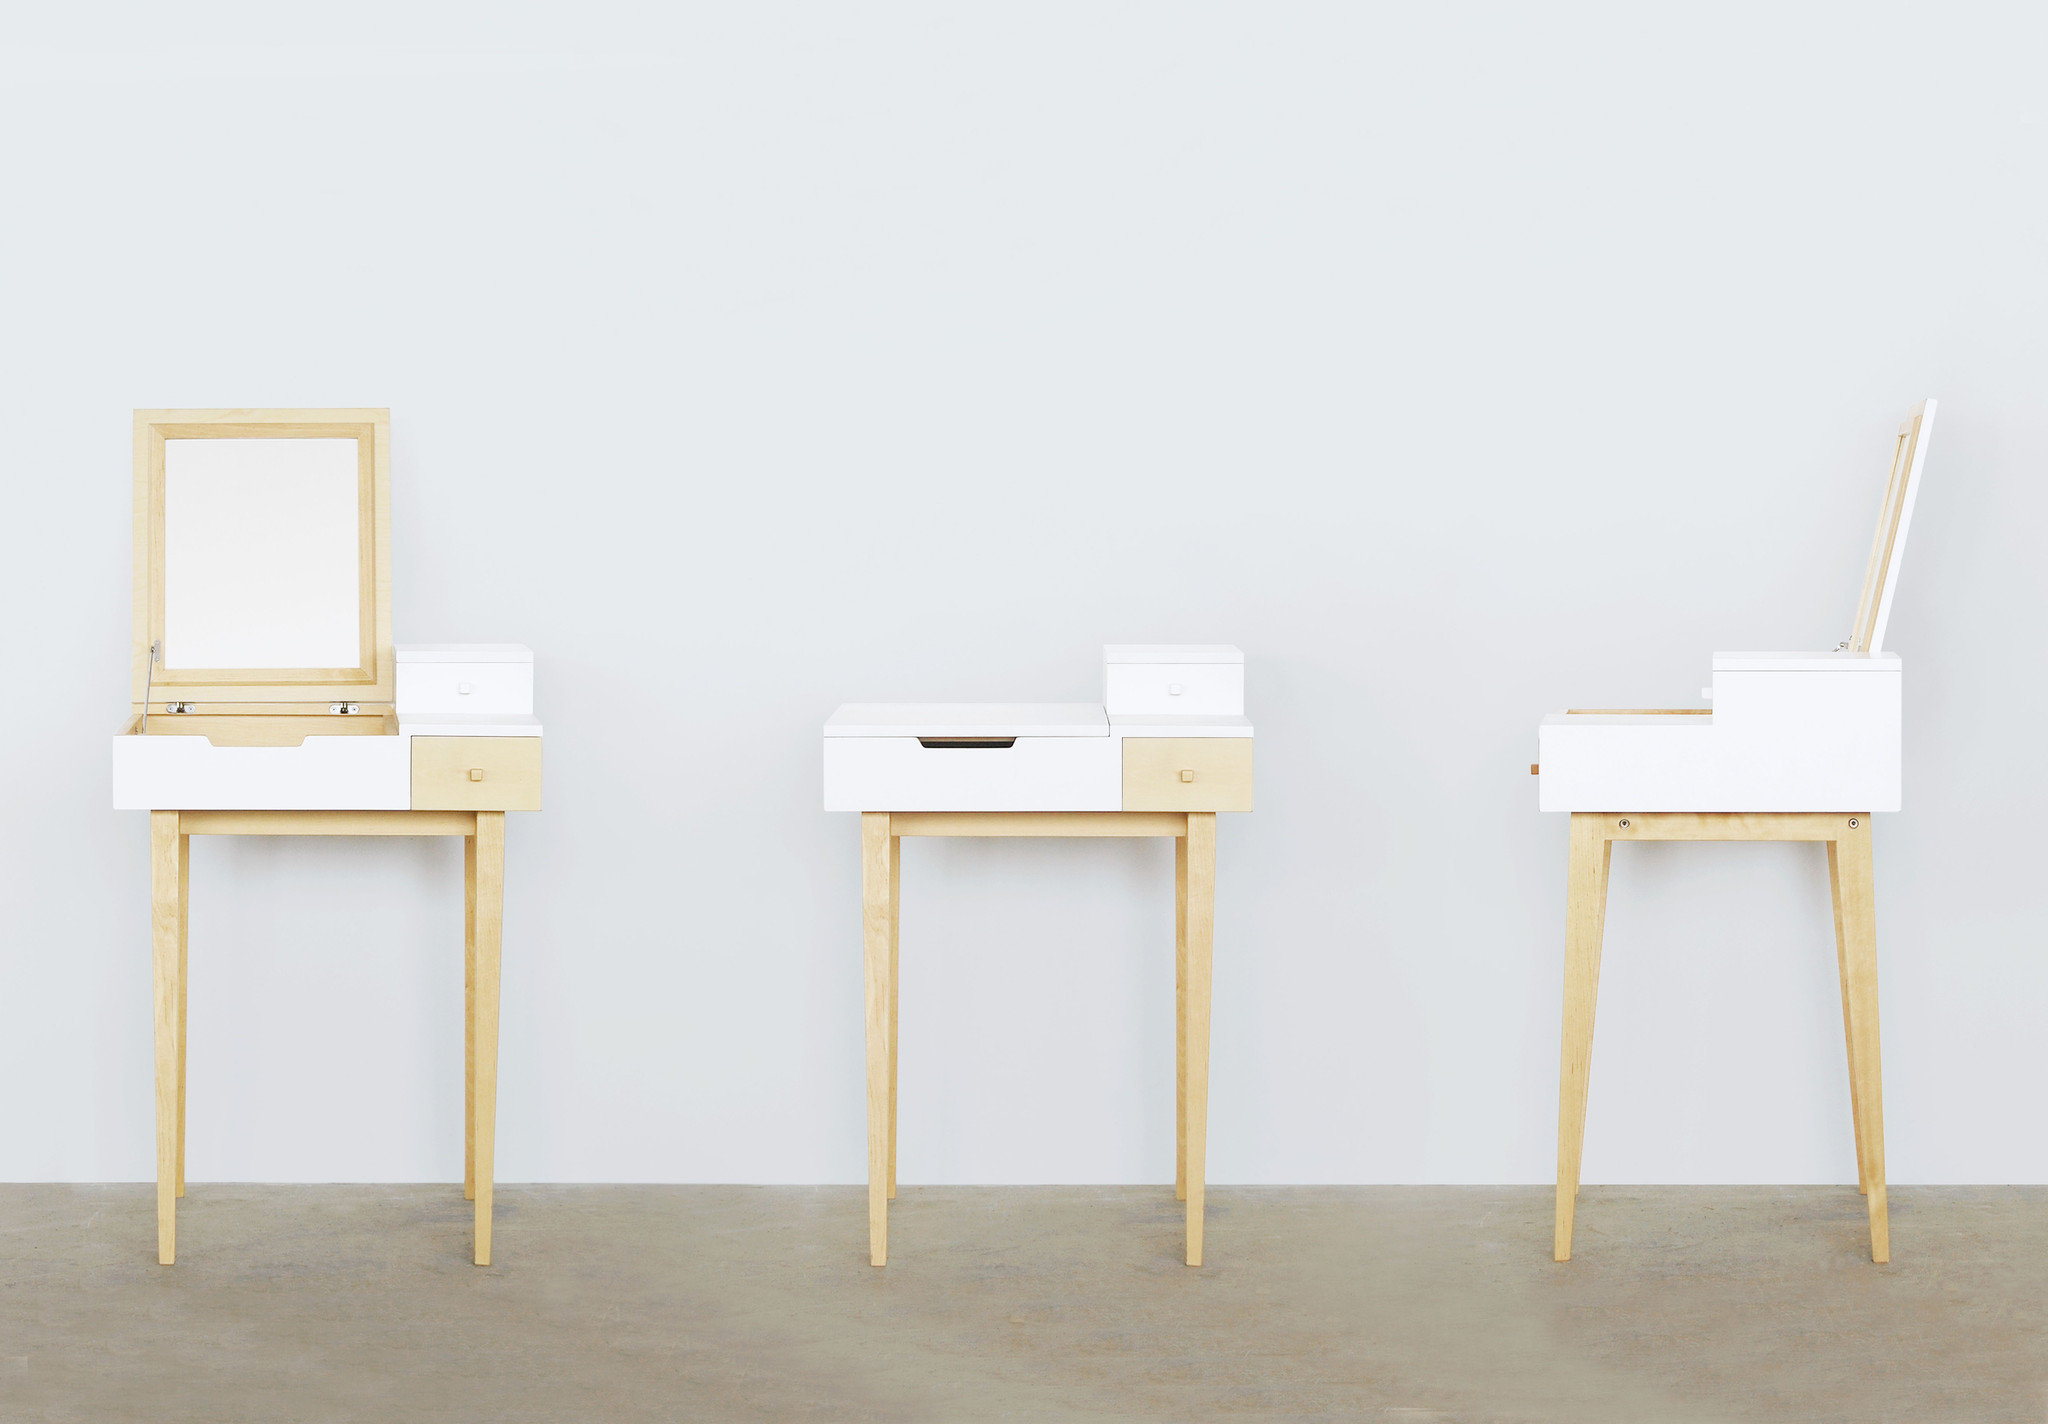 Design Brands From Shanghai to Feature at 100% Design (7)